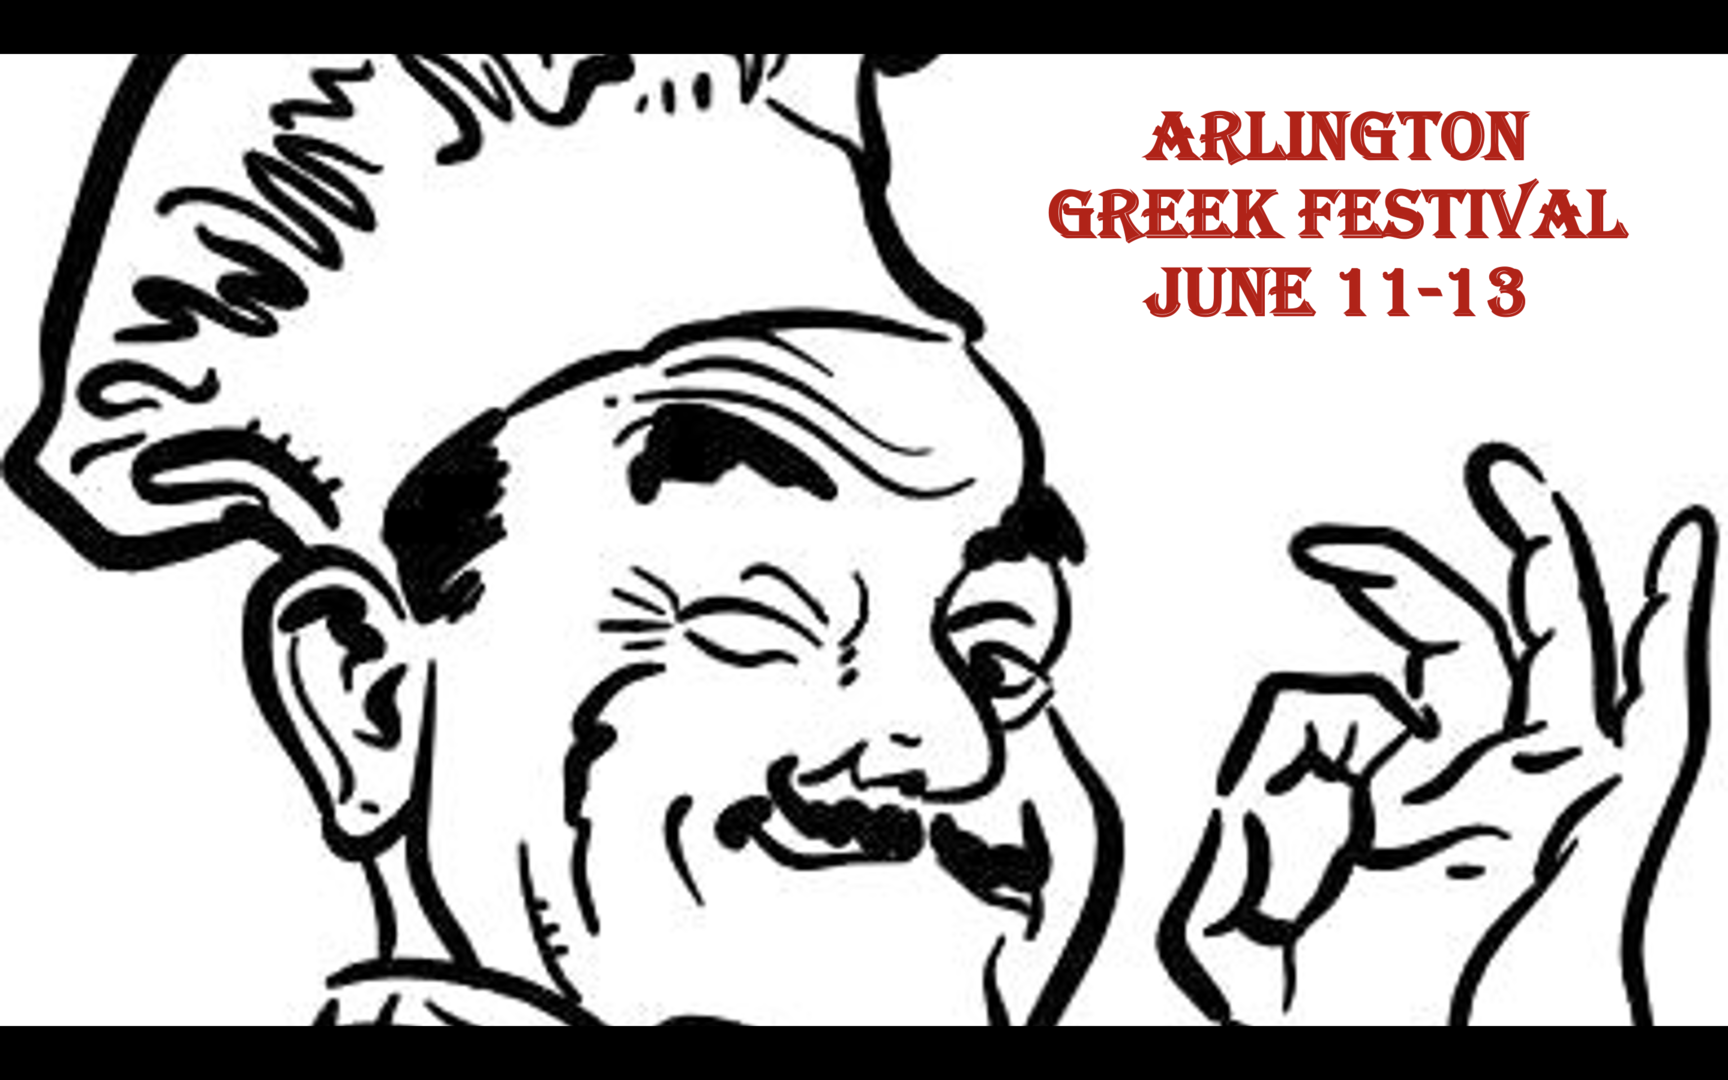 Arlington Greek Food Festival - ALL Weekend - Starts Friday - Outdoor+Tent Seating - Take Out Too!! - Arlington Greek Food Festival - ALL Weekend - Starts Friday - Outdoor+Tent Seating - Take Out Too!!